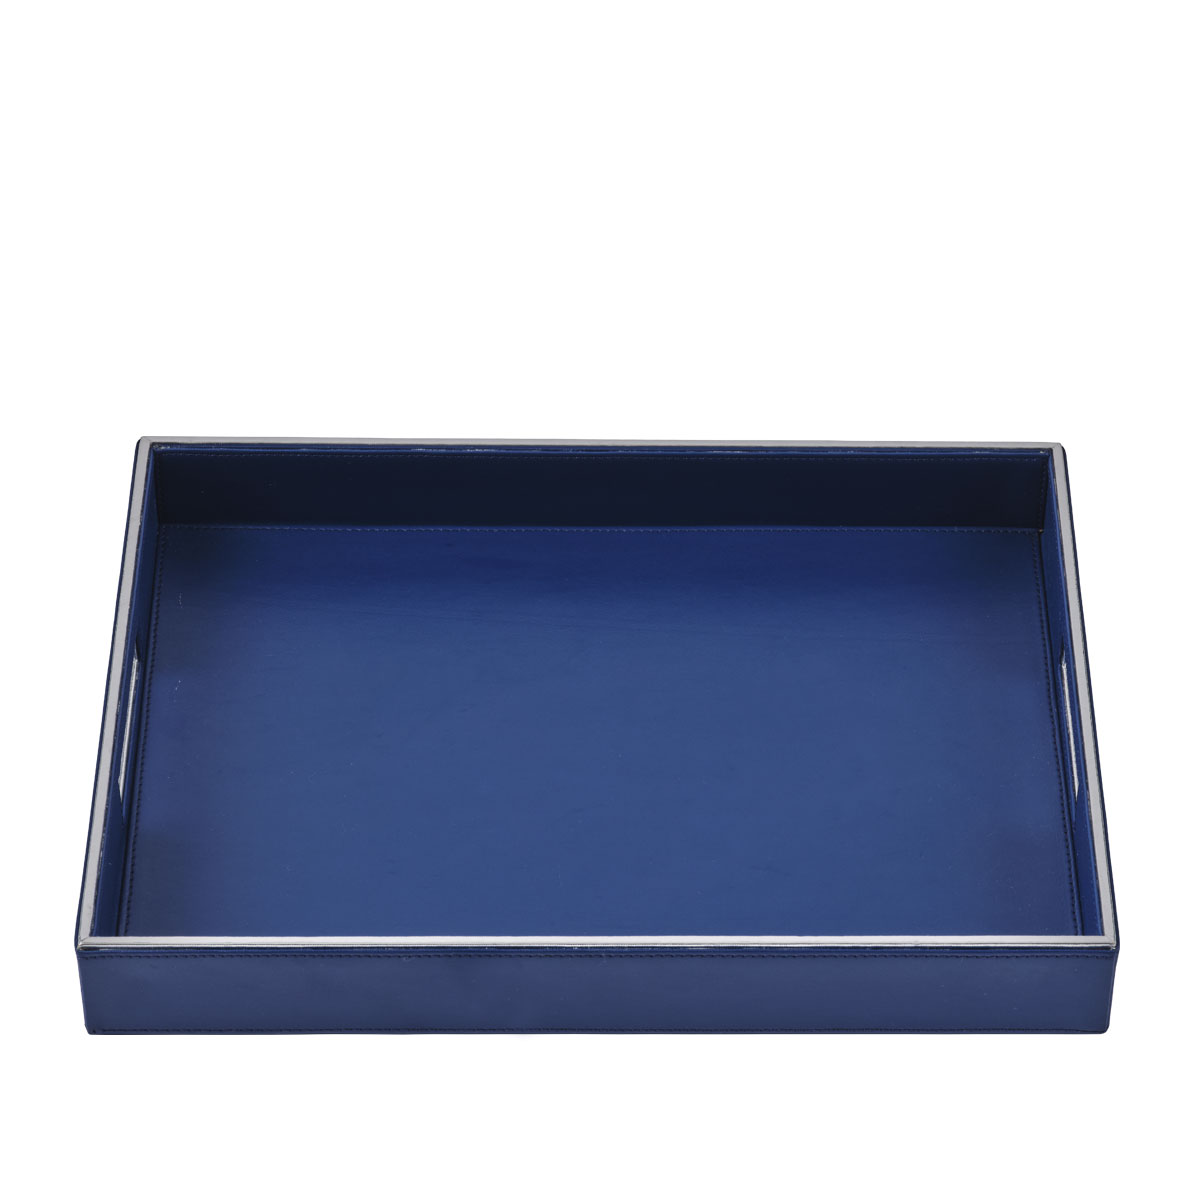 blue luxor serving tray large